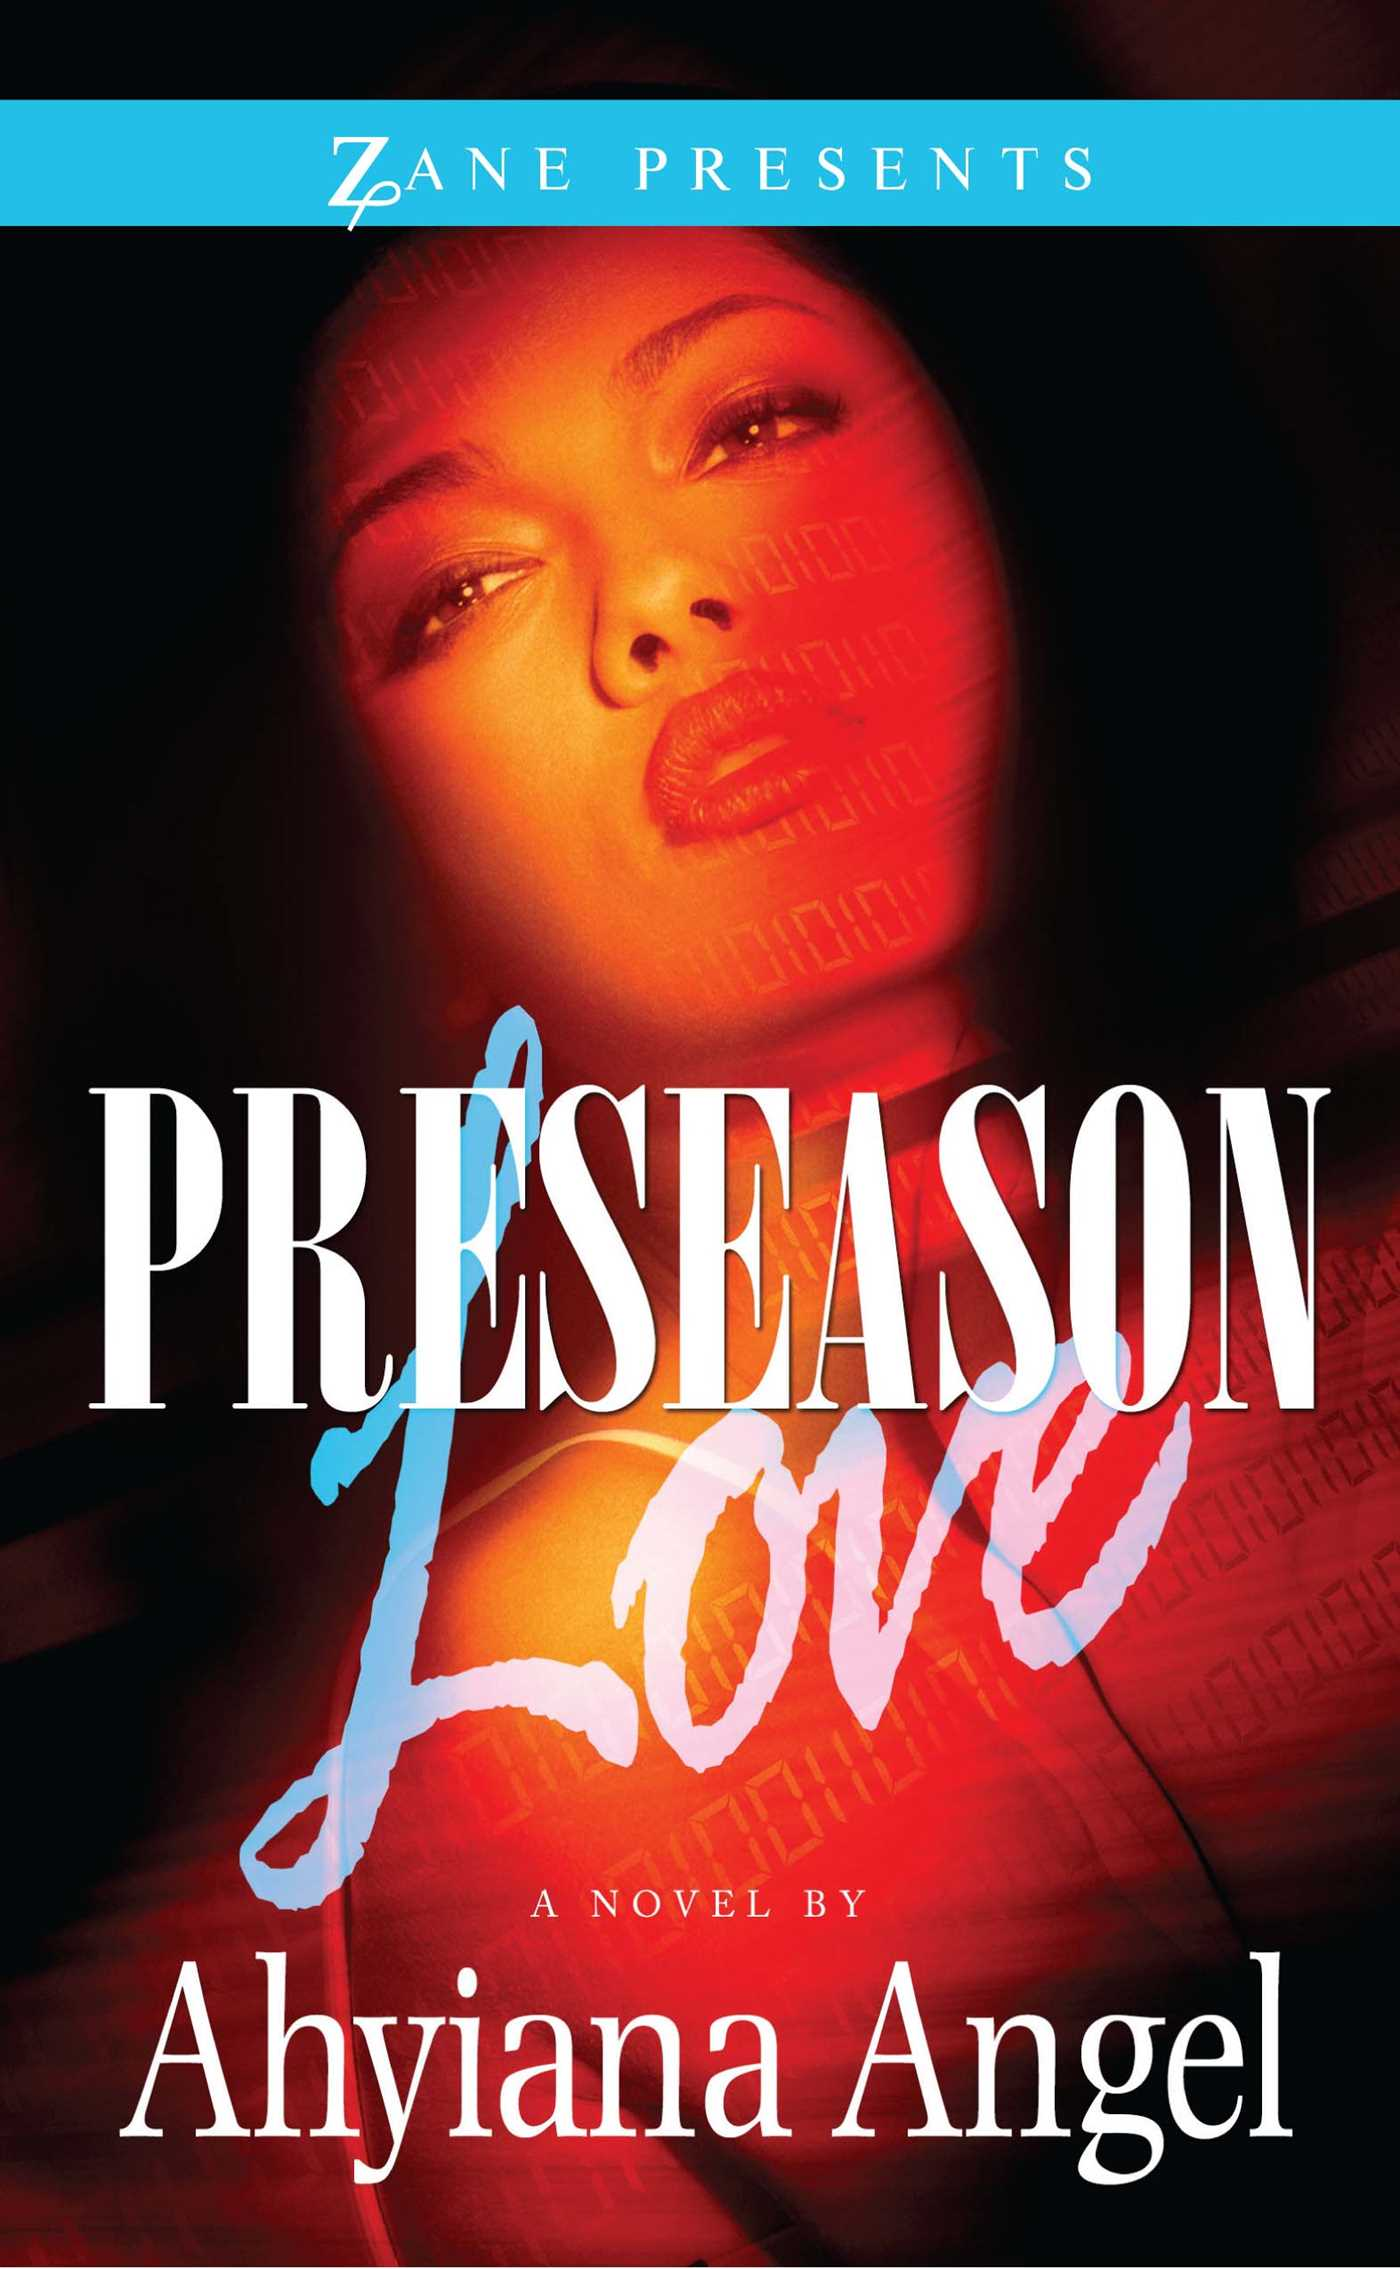 Preseason-love-9781593096120_hr